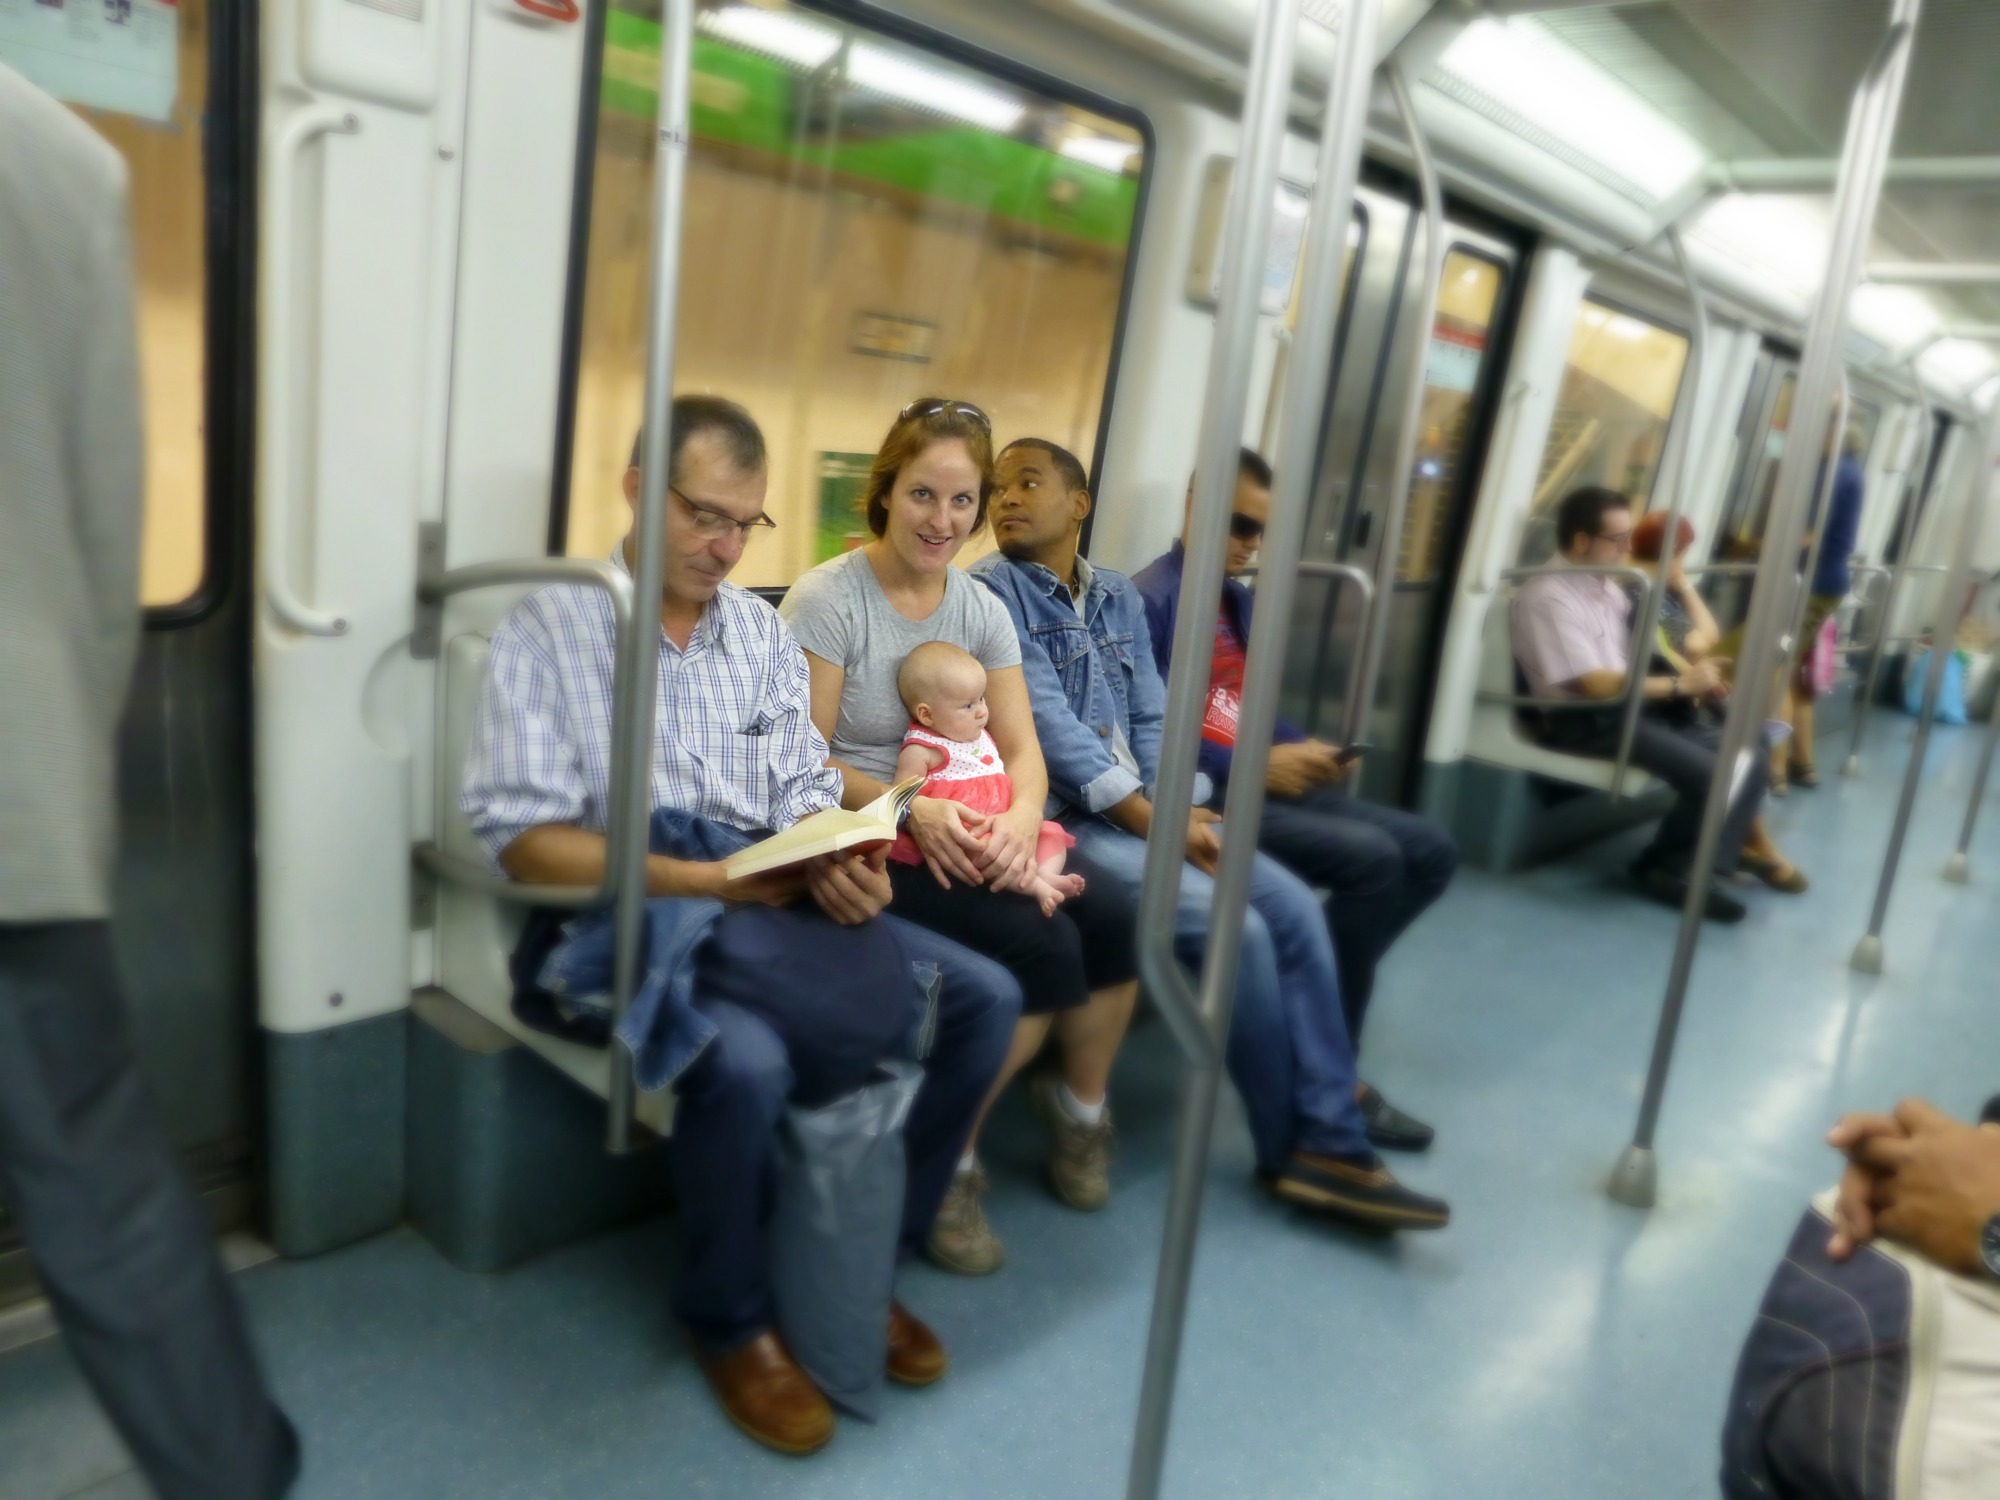 Barcelona Public Transit with a baby